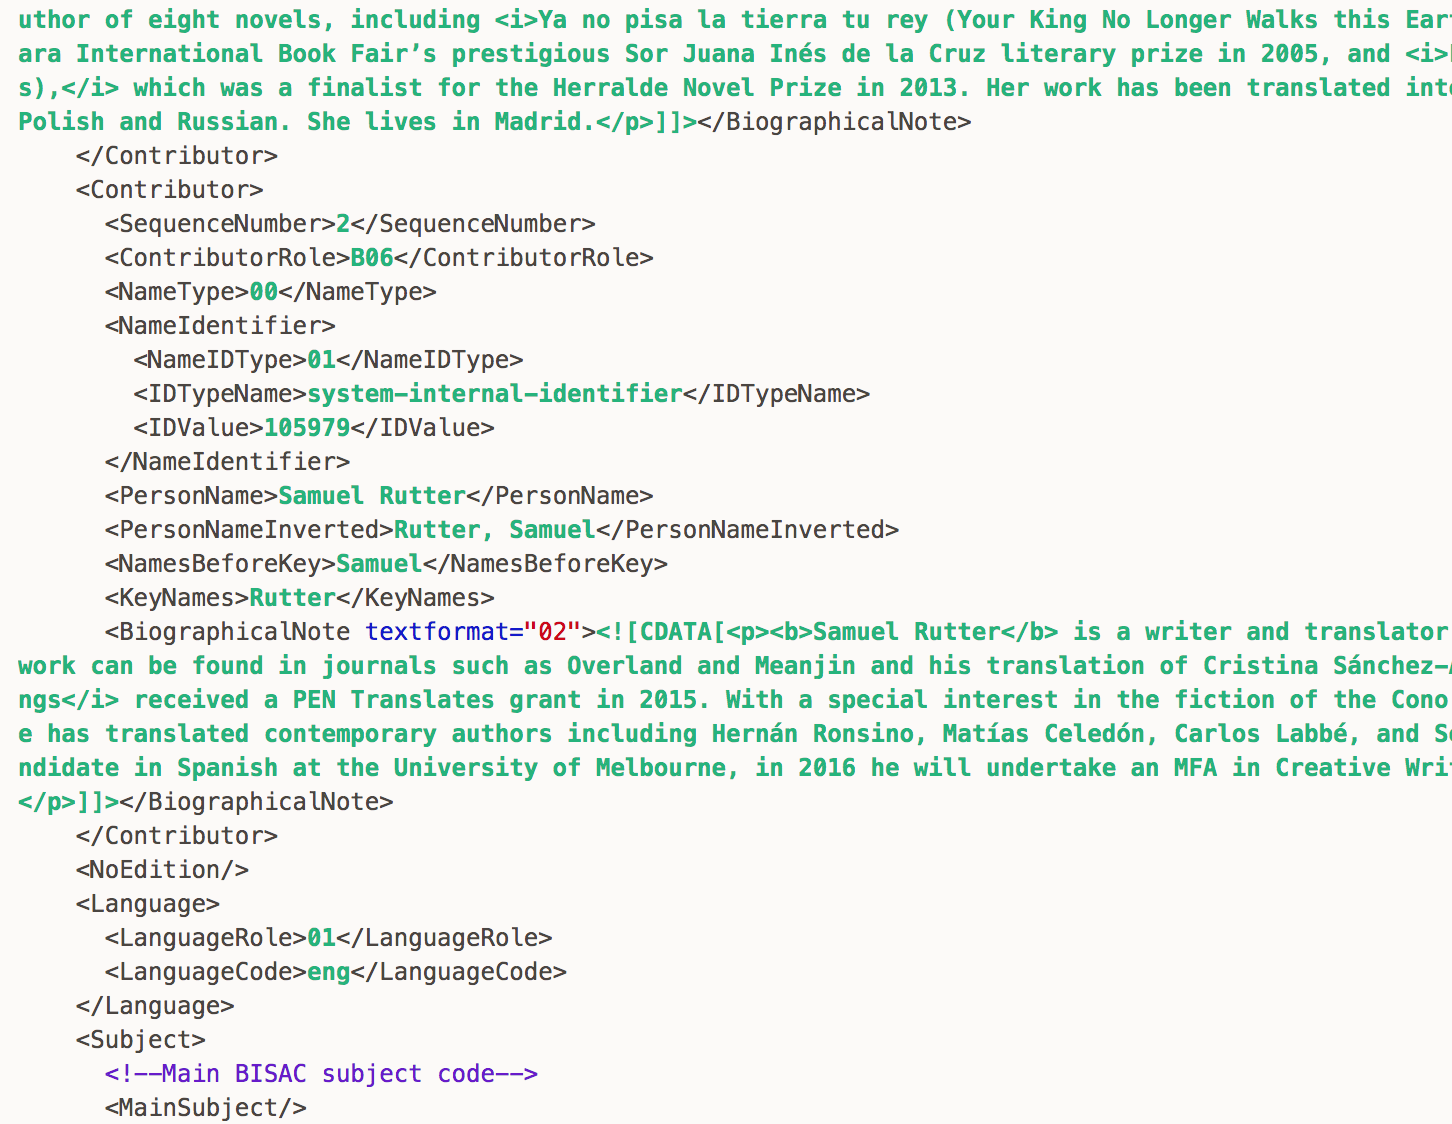 A screenshot of a fragment of ONIX XML code.